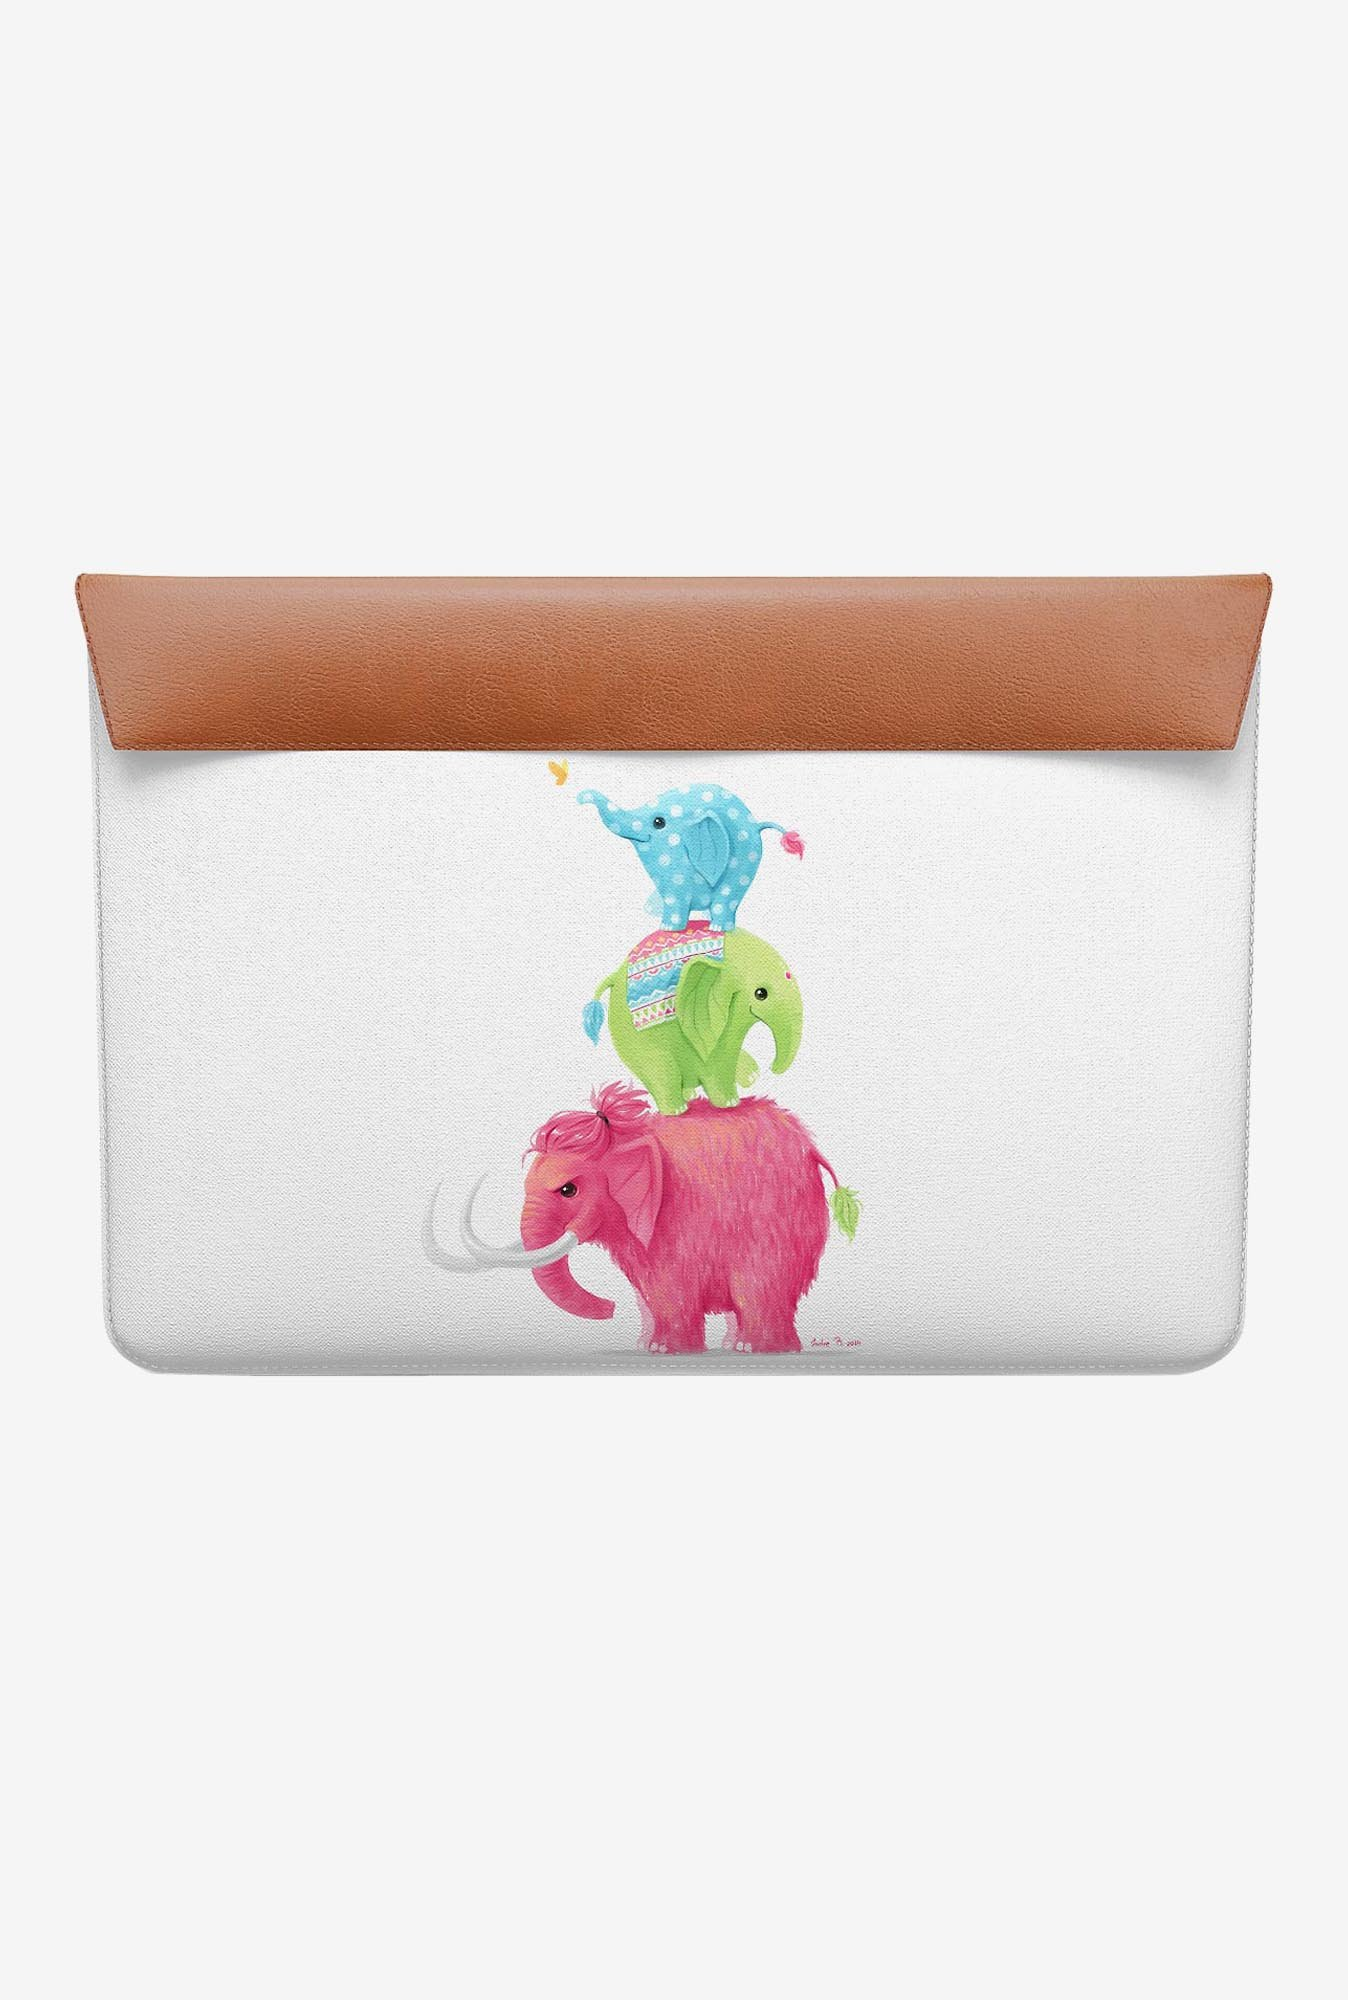 DailyObjects Candy Elephants MacBook Air 11 Envelope Sleeve